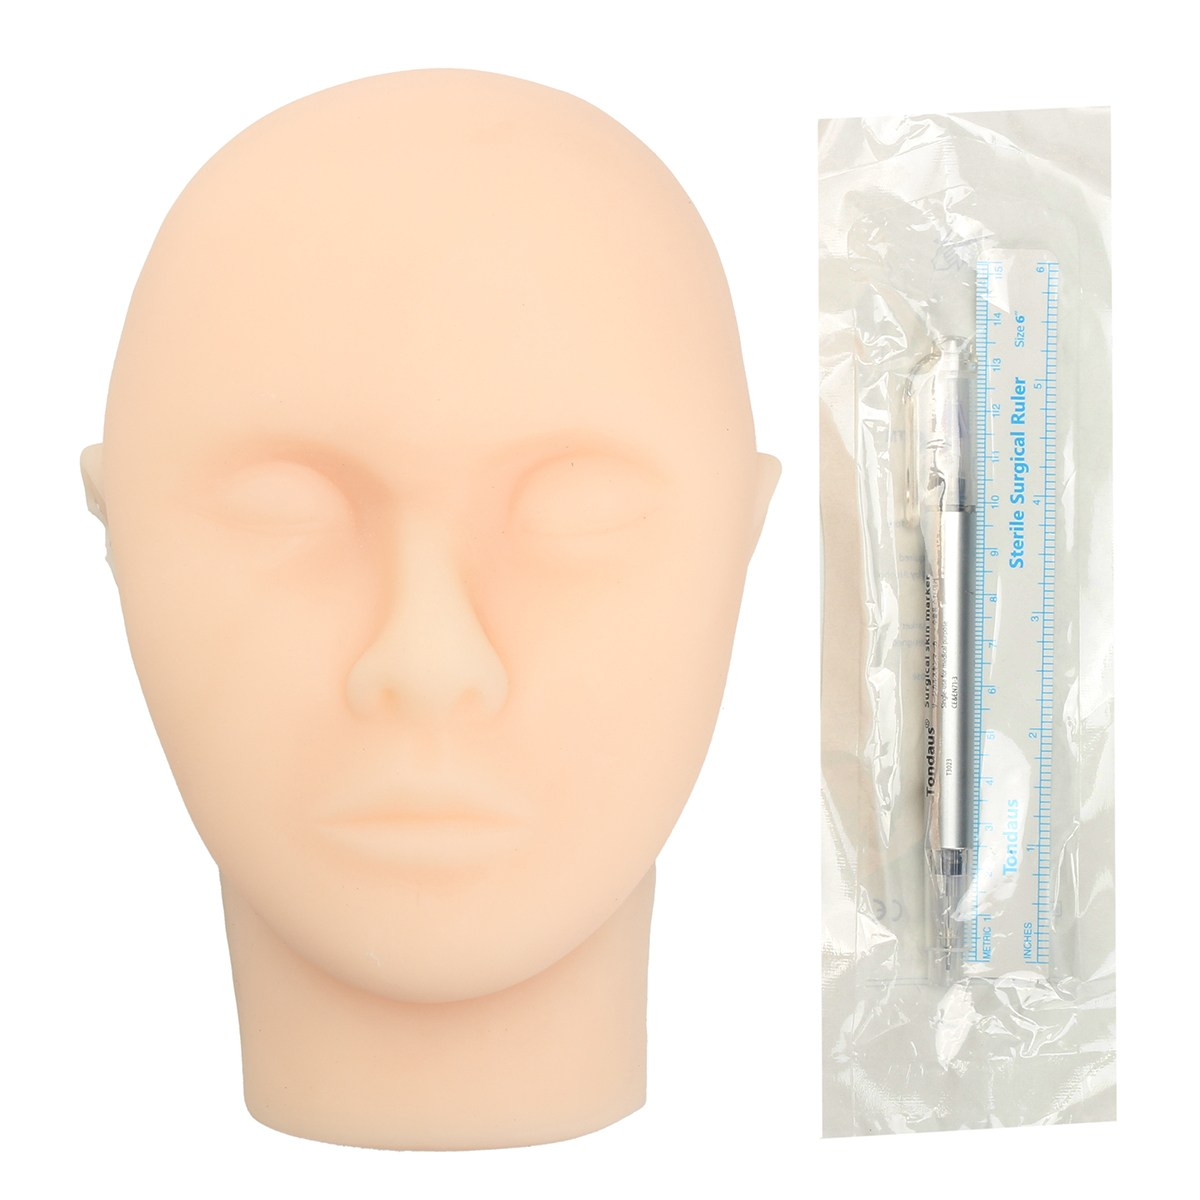 Surgical Silicone Head Model Facial Injection Training Model With Marker Pen Measuring Ruler For Beauty Massage Tattoo Suture touchnew 60 colors artist dual head sketch markers for manga marker school drawing marker pen design supplies 5type